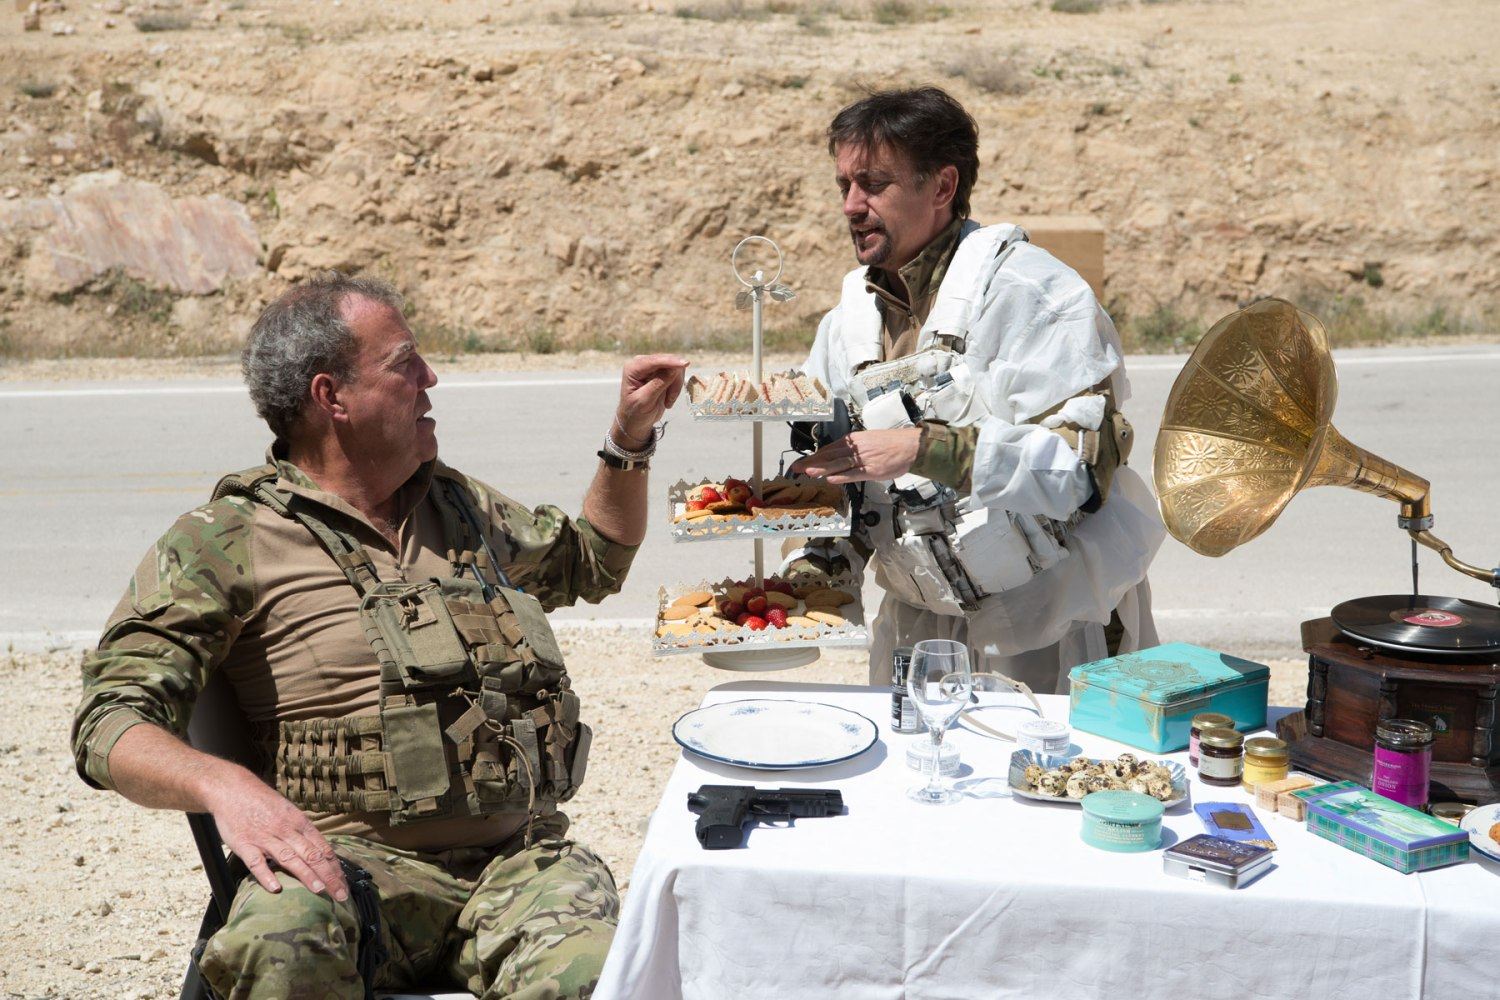 The Grand Tour hosts go commando in episode 2: Operation Desert Stumble